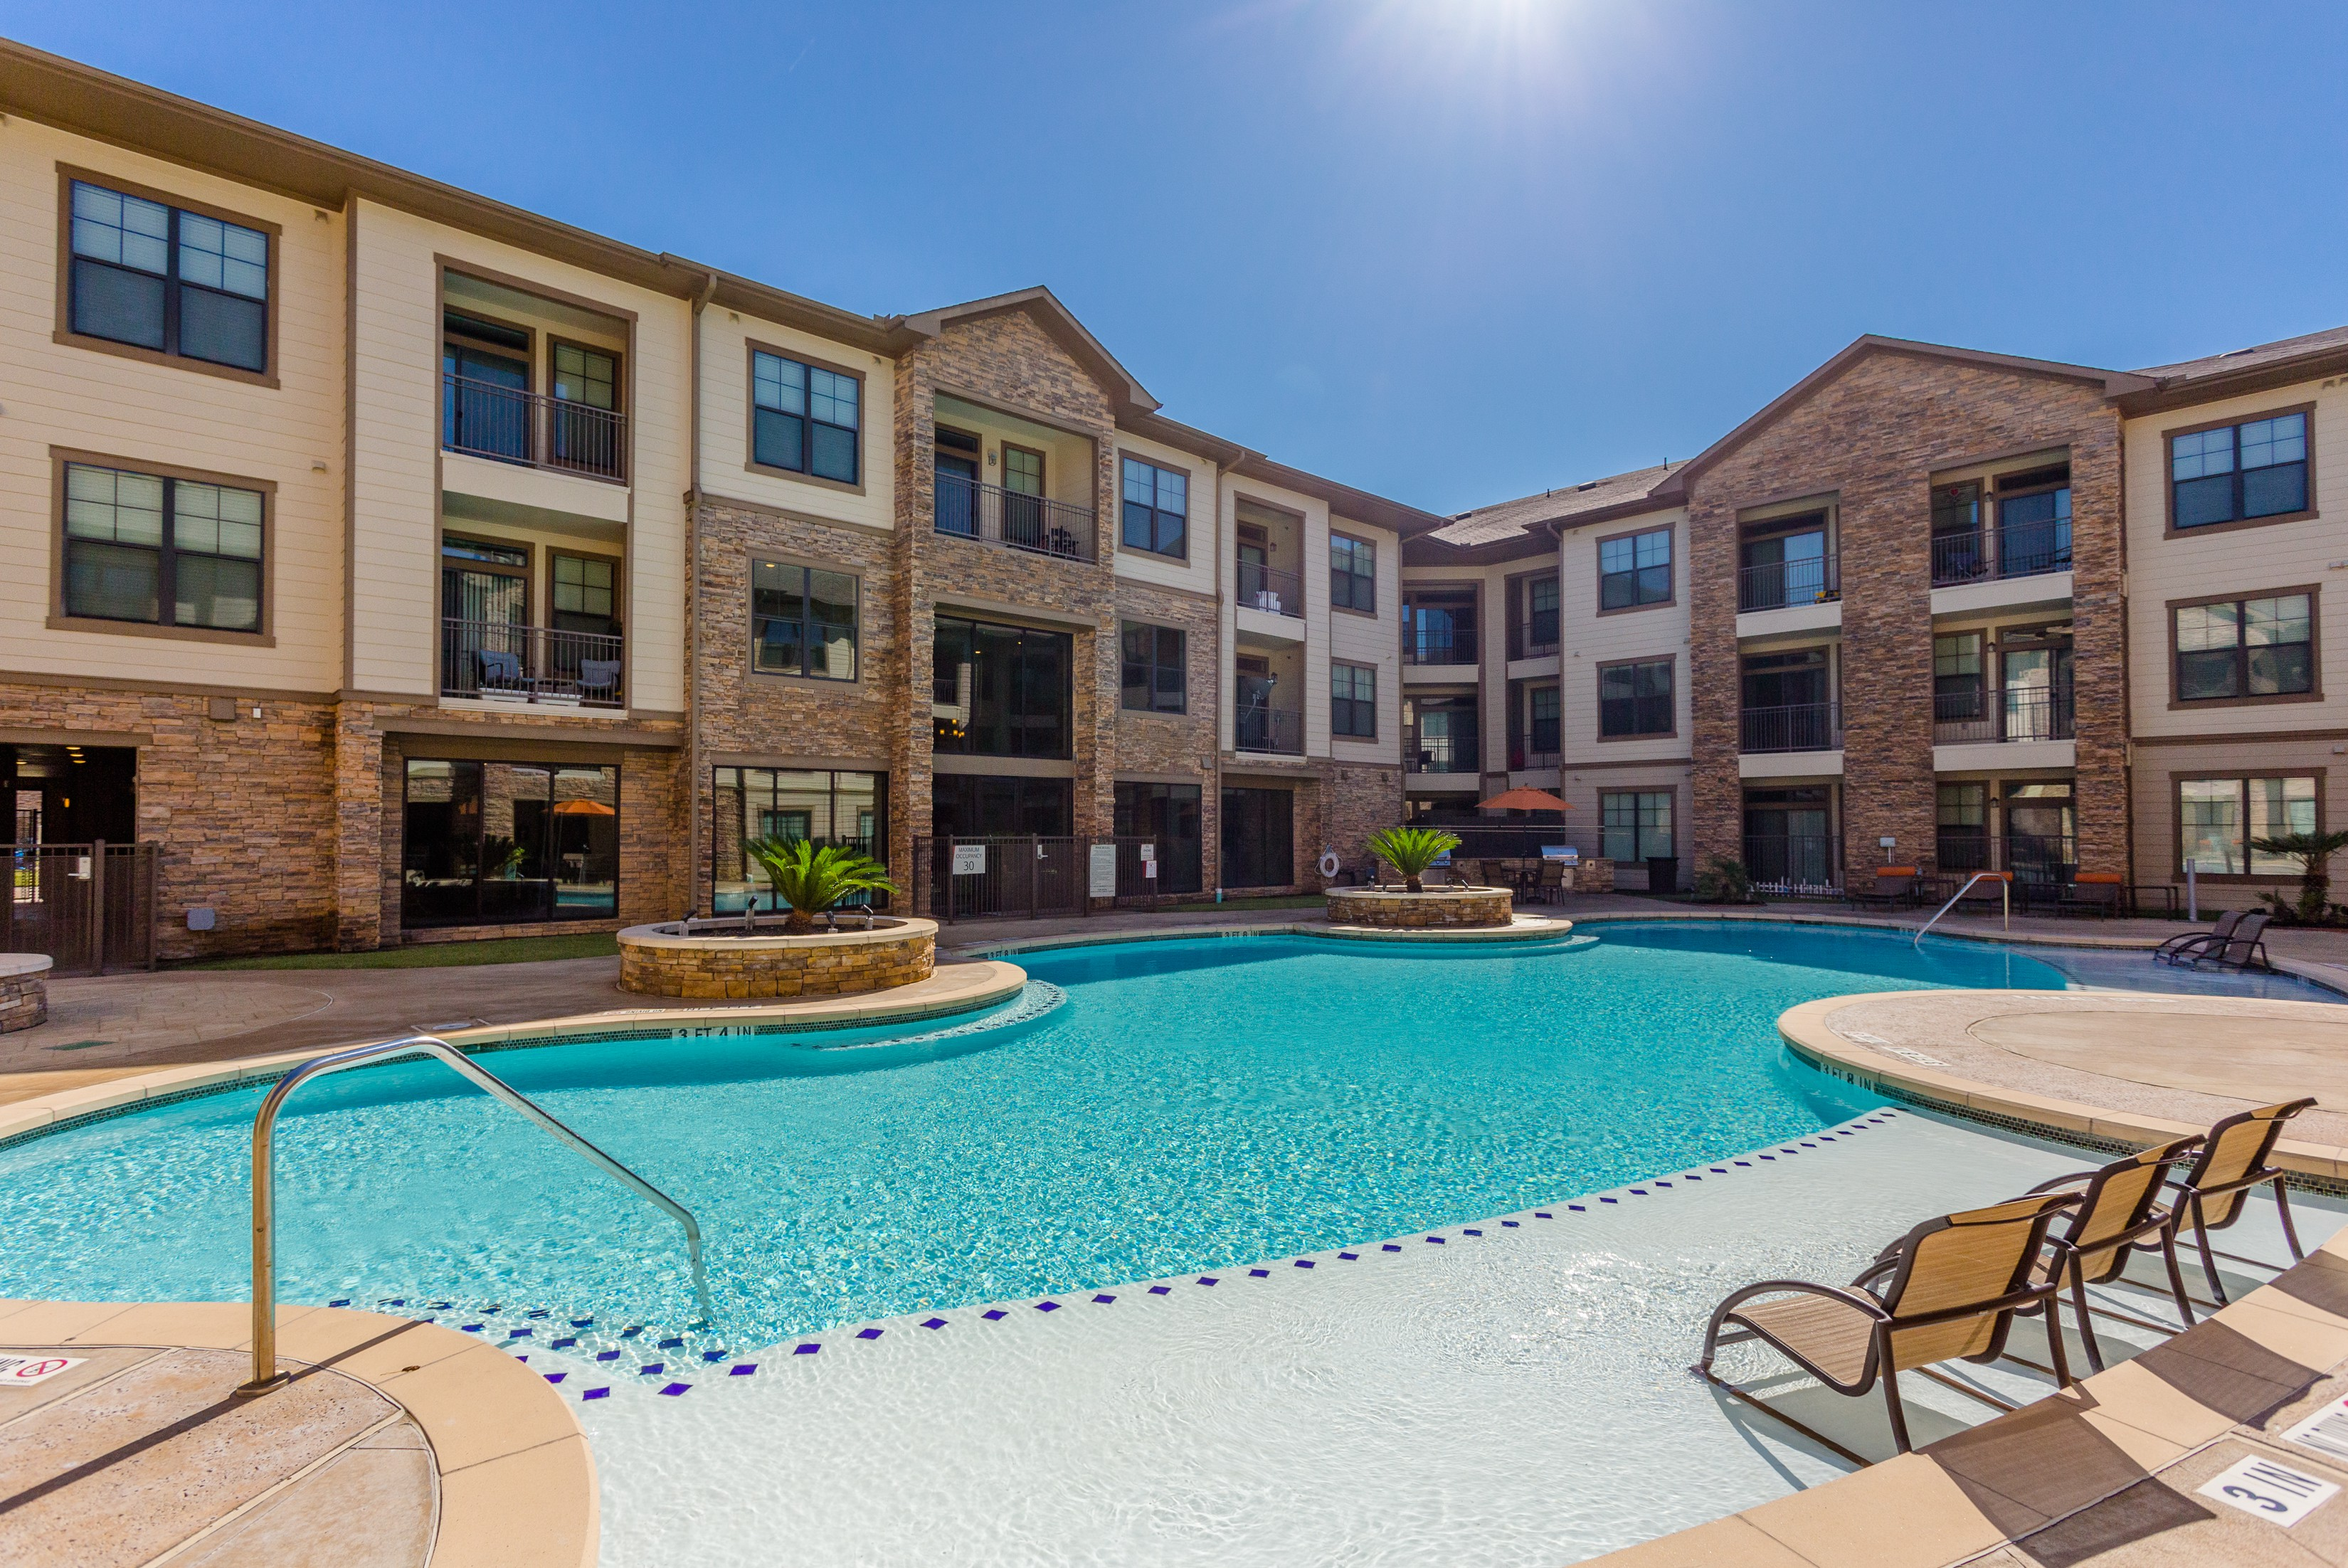 Apartments Near National American University-Houston The Haven at Westgreen for National American University-Houston Students in Houston, TX